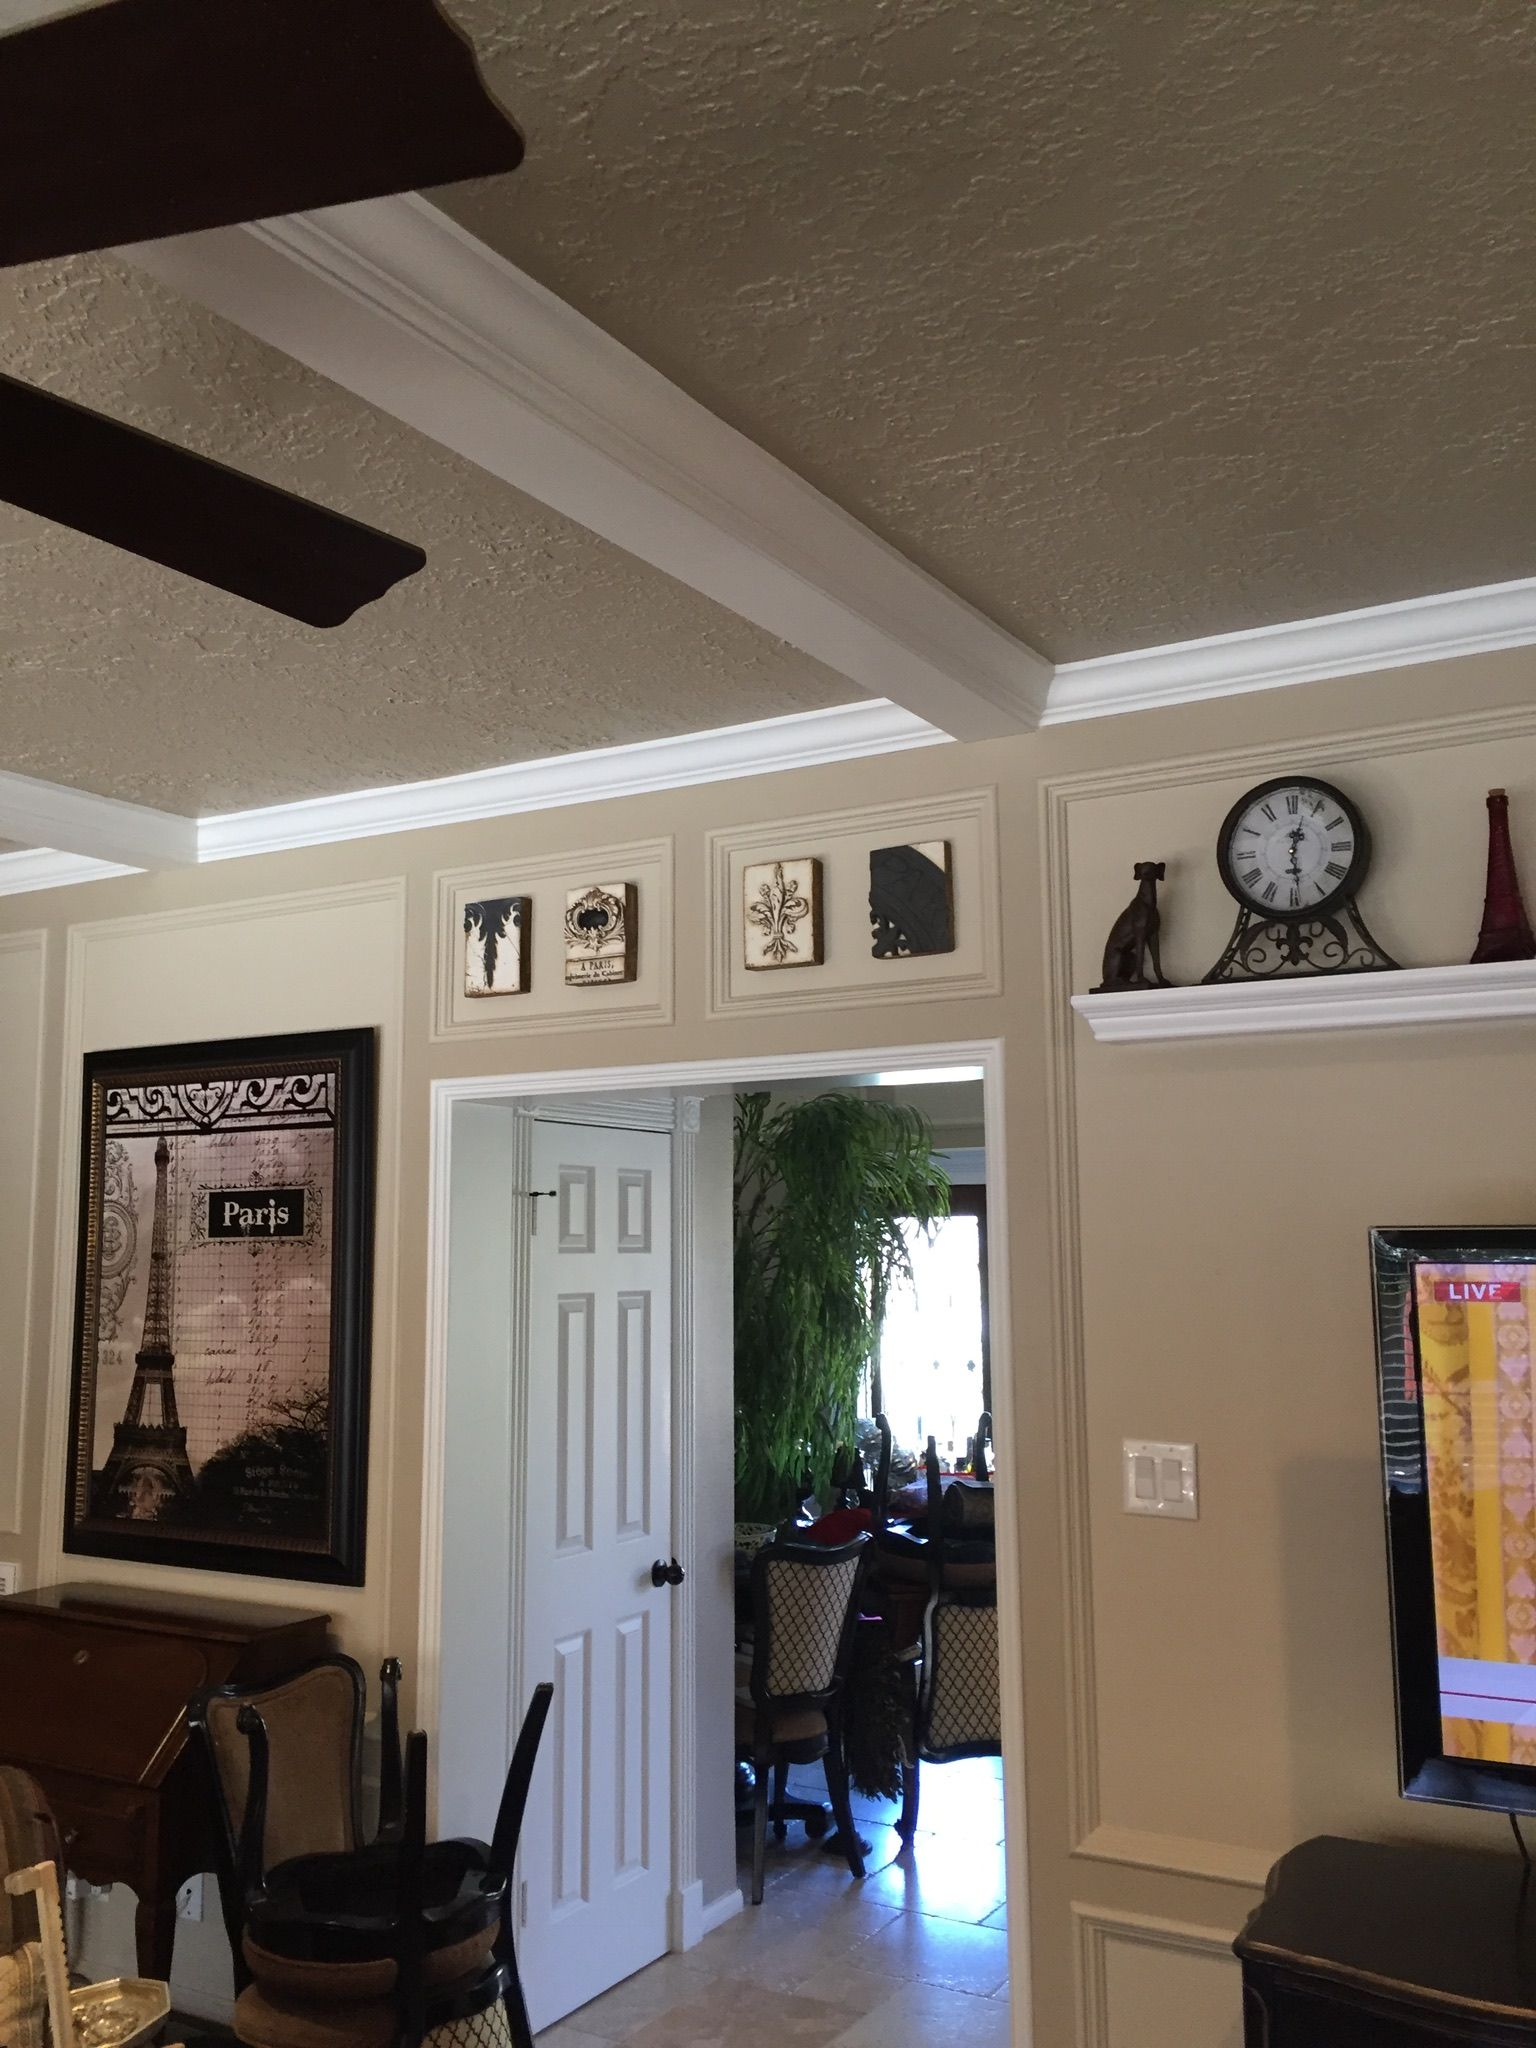 best neutral paint colors 2018 for living room black and white decorations rooms family with painted paneling...sherwin williams ...